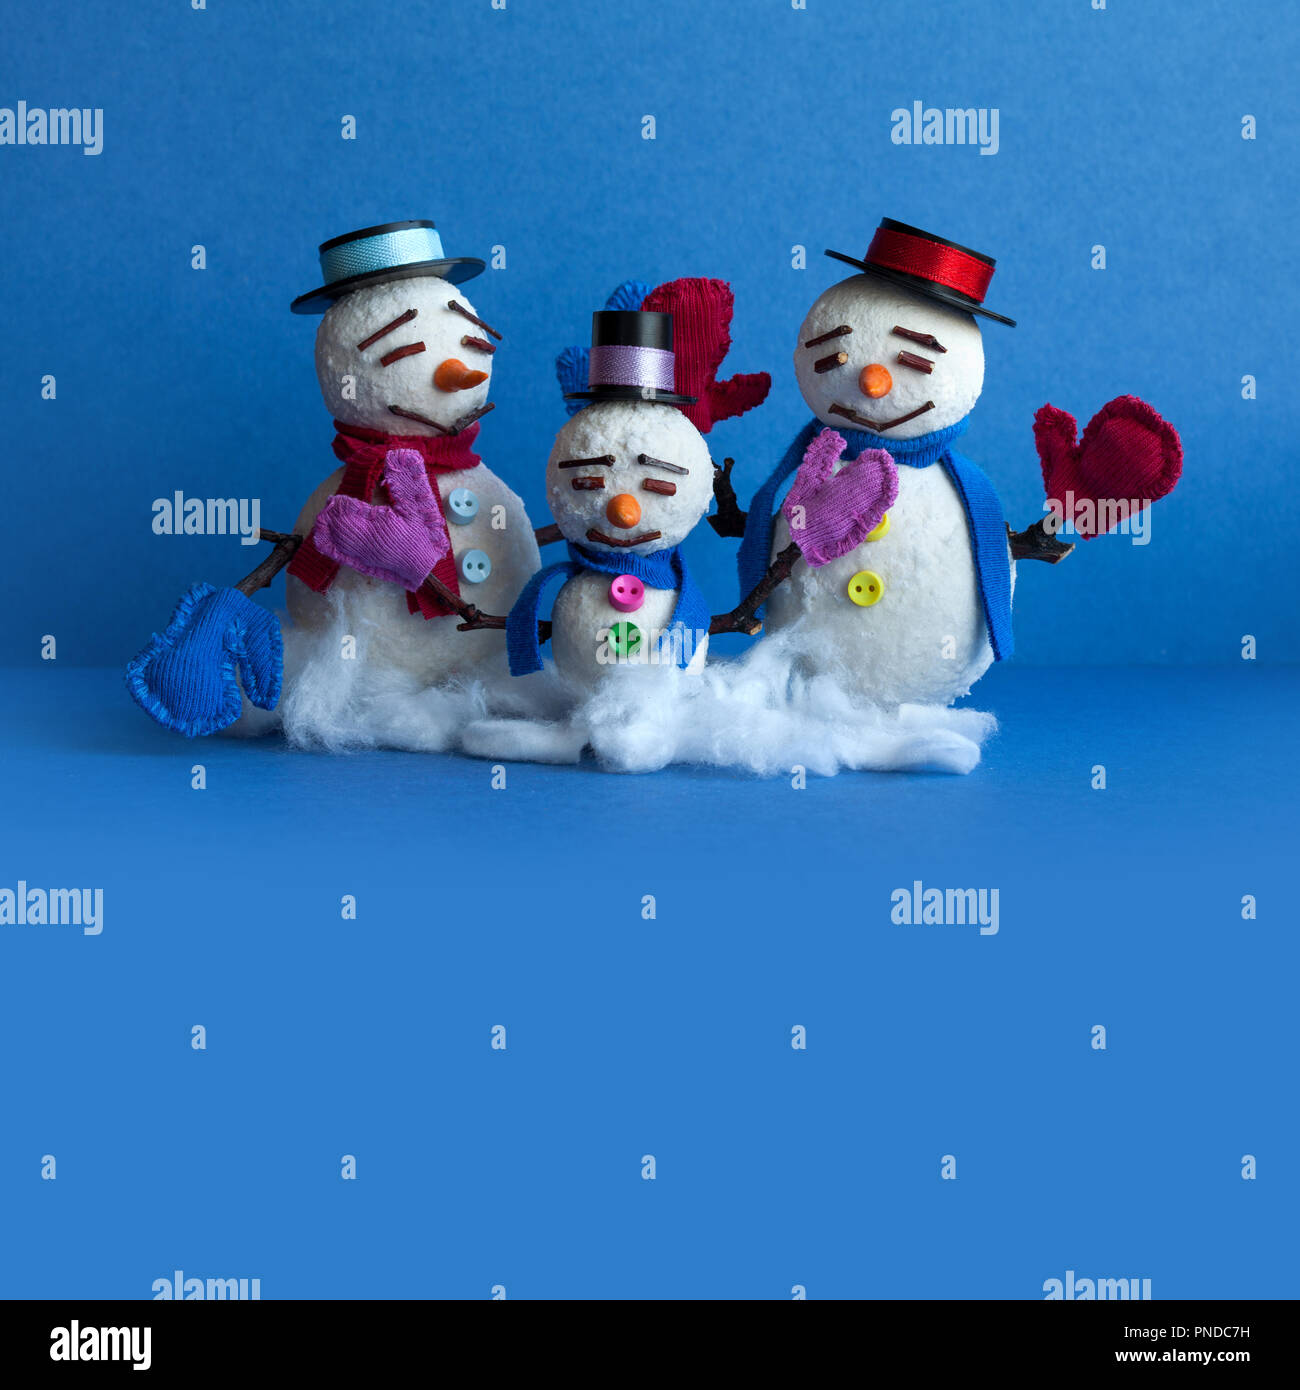 Snowmen family on blue background. Xmas comical snowman characters with mittens scarves and funny hats. Copy space - Stock Image